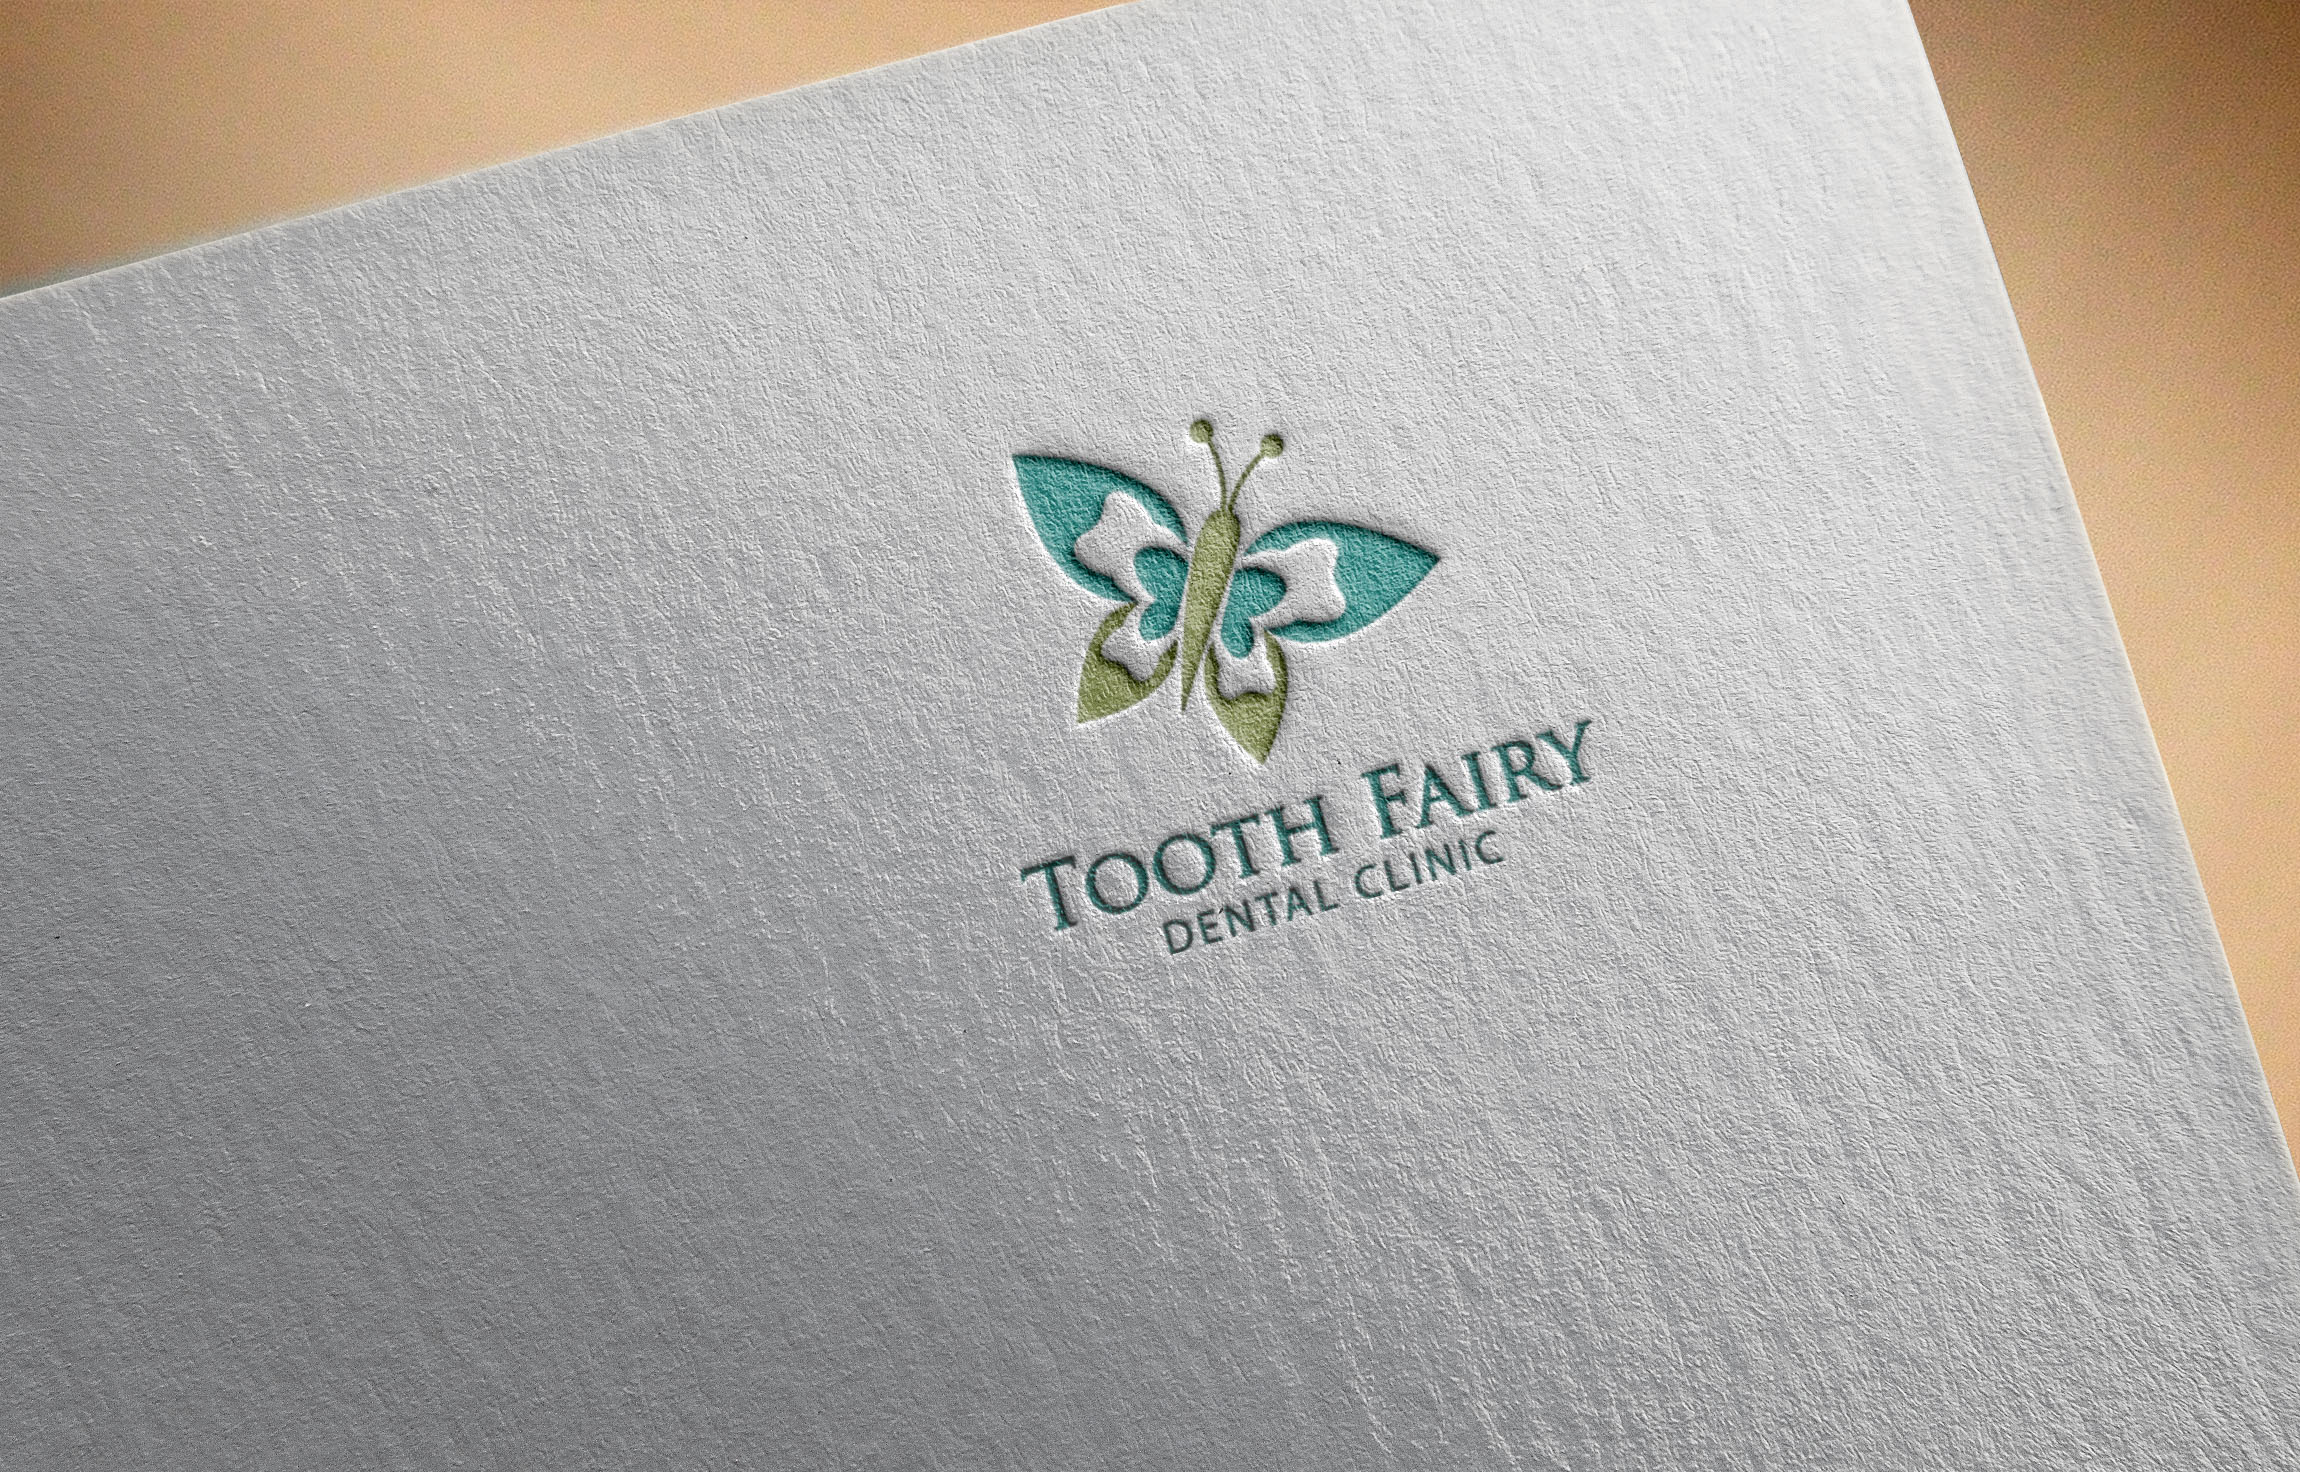 Tooth Fairy Katalinedesign Logos